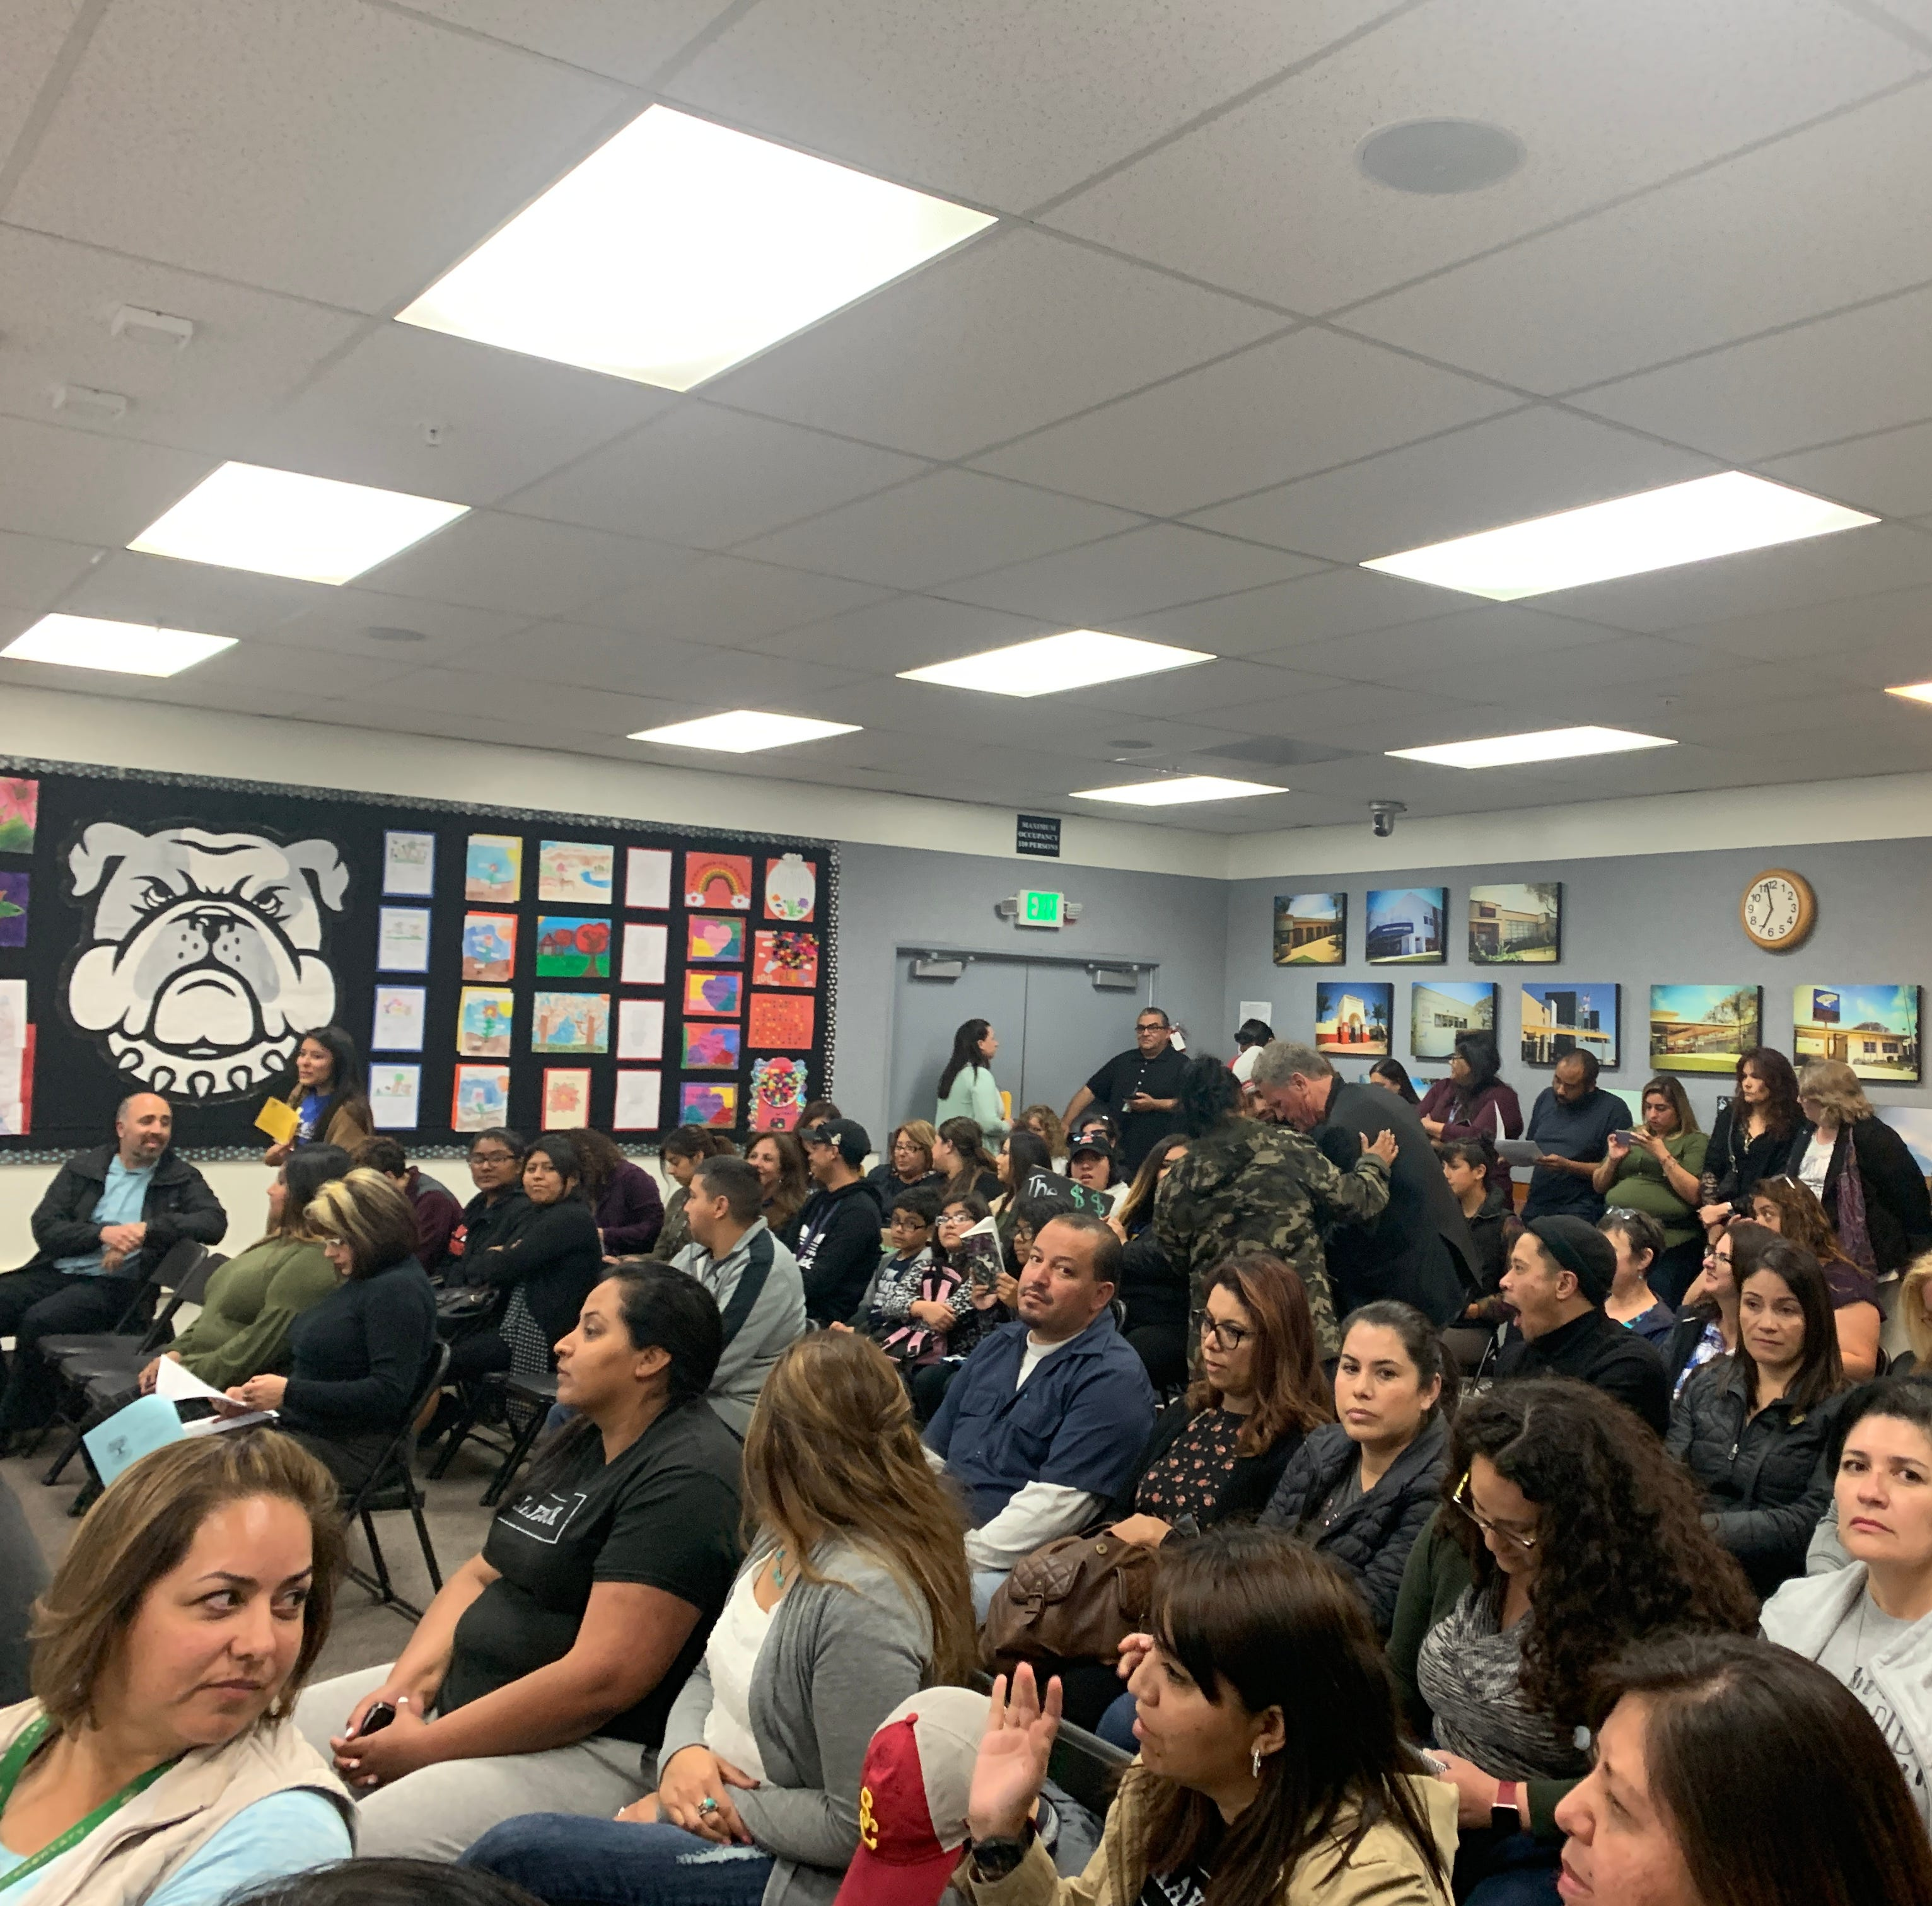 Oxnard school board approves layoffs, reduced hours for classified staff due to budget woes